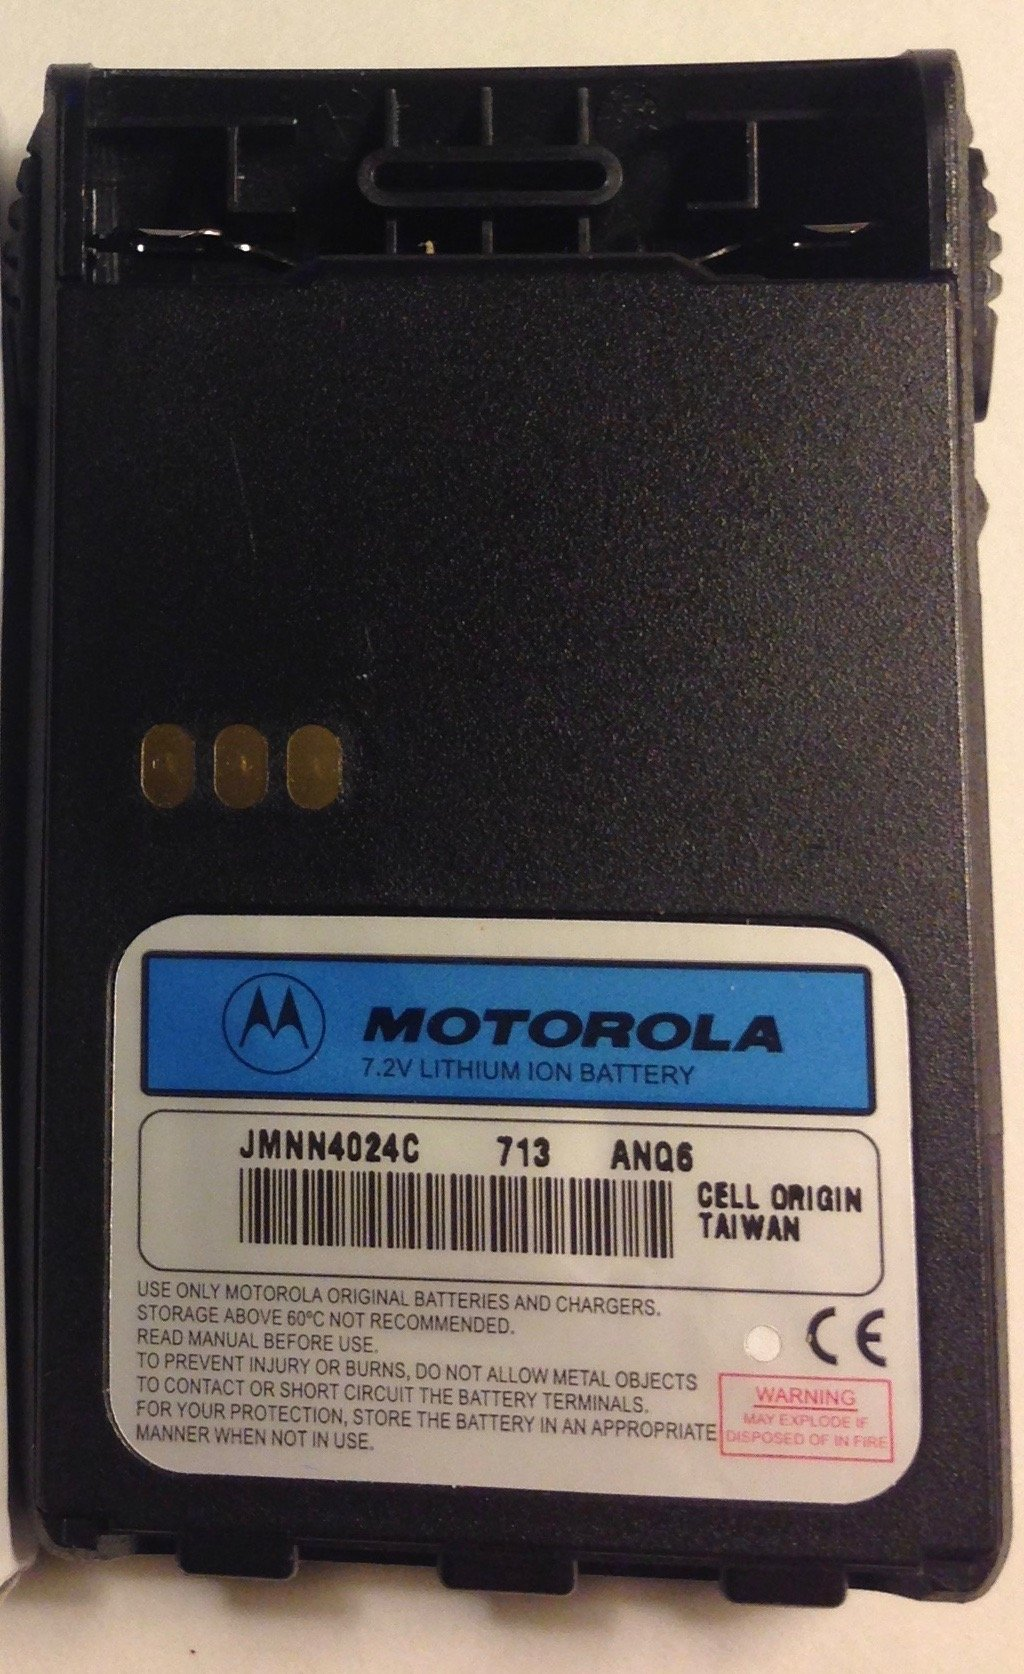 Motorola Original (OEM) JMNN4024CR Li-Ion 7.4V 1300mAh Battery